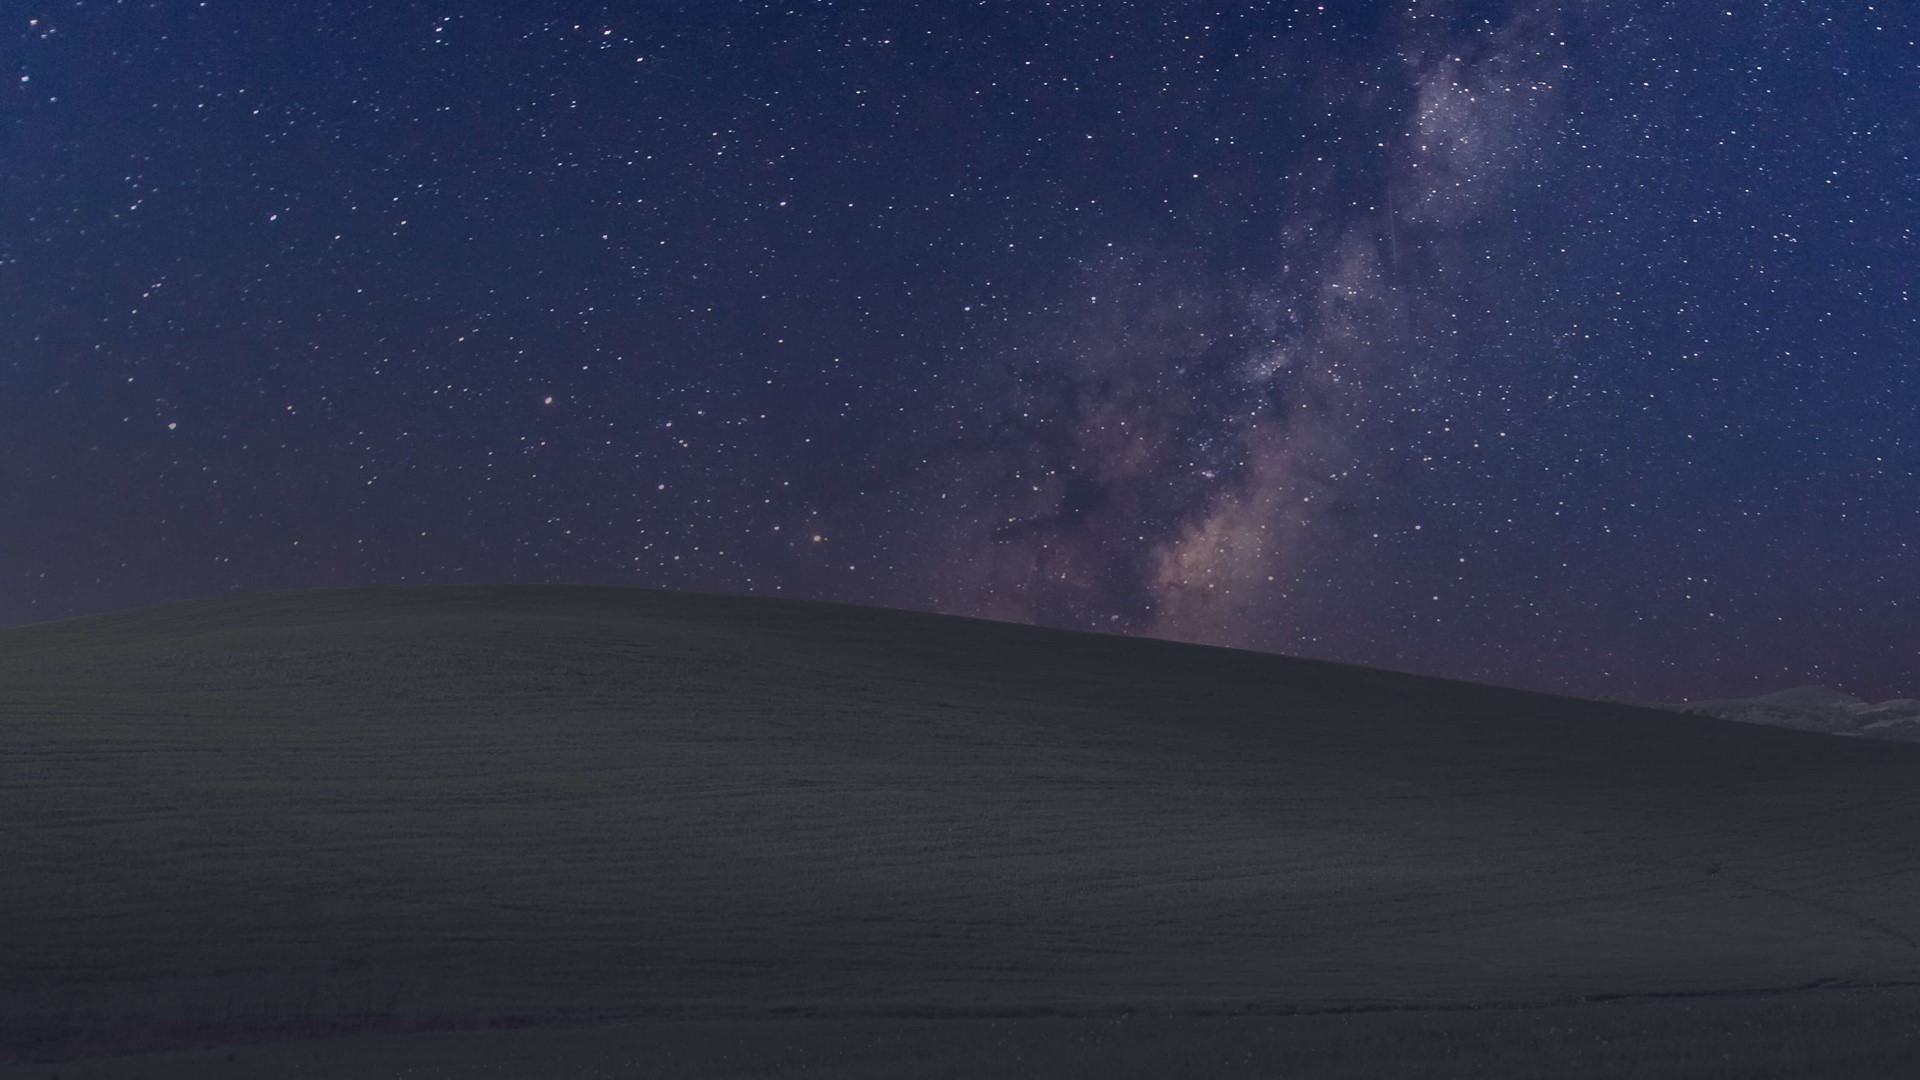 These Two Windows 10 Wallpapers Are Perfect For Your Darker Side Mspoweruser